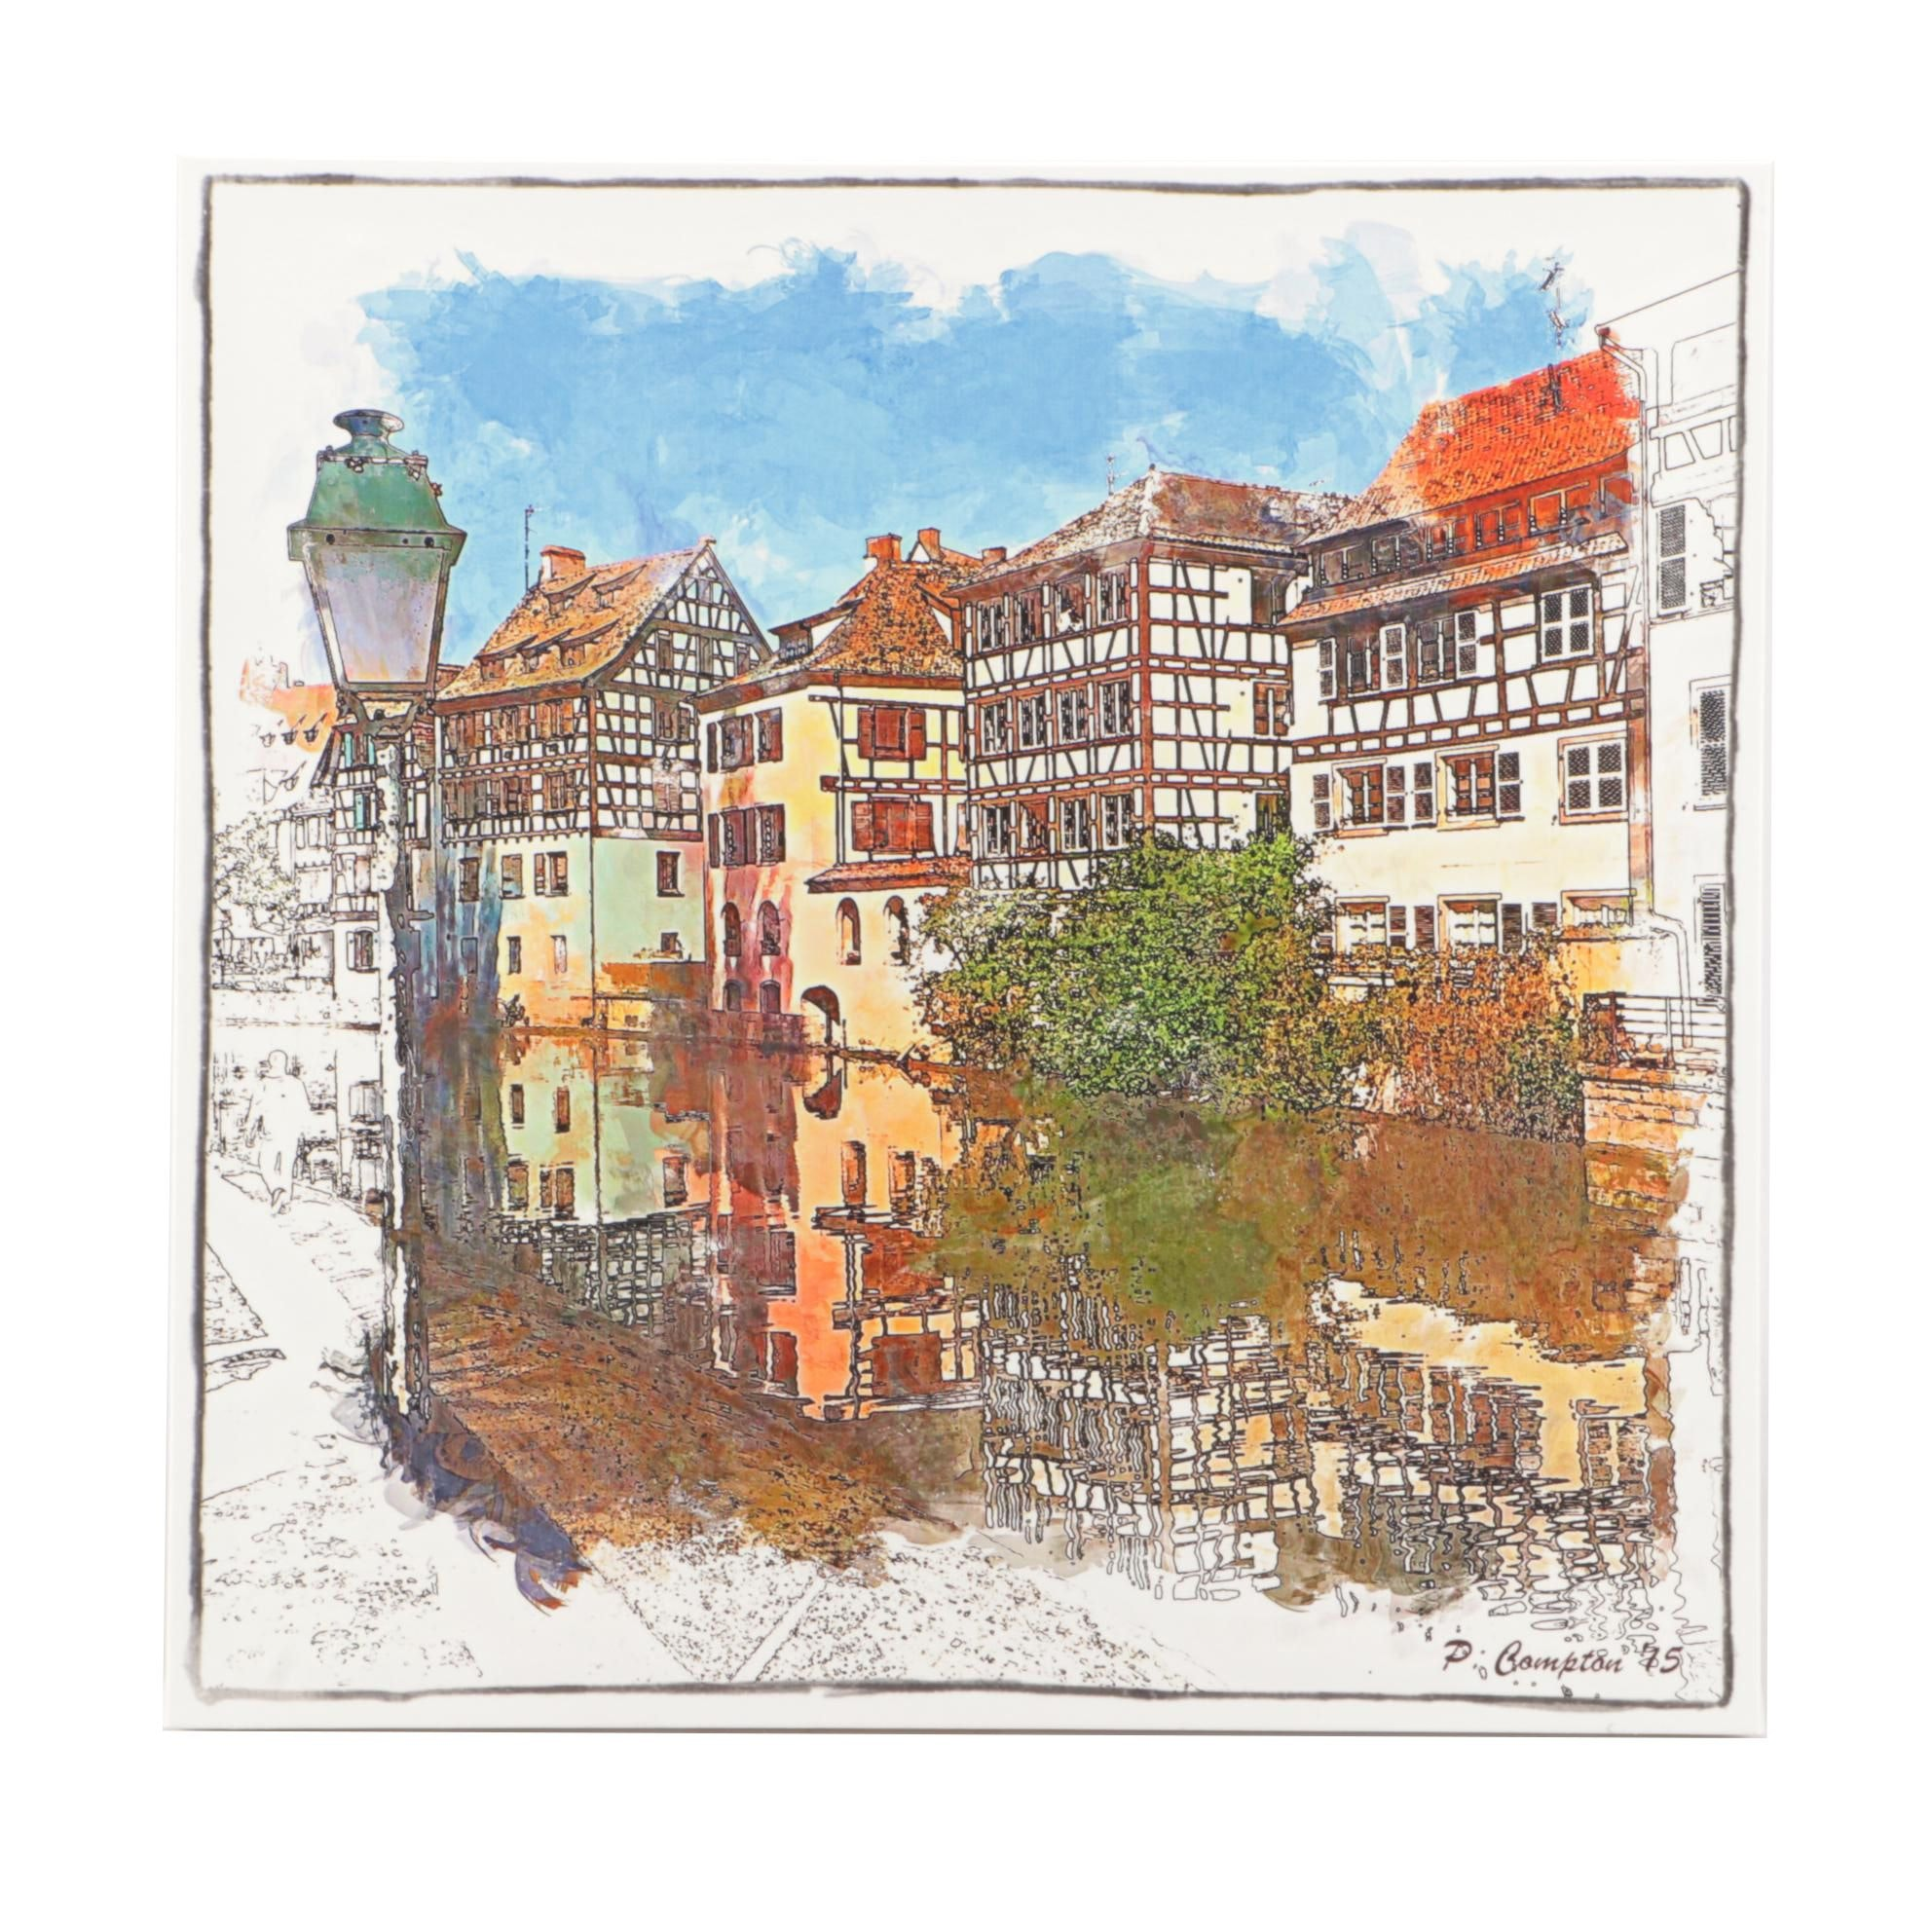 Giclee Print of European Street Scene after Phil Compton